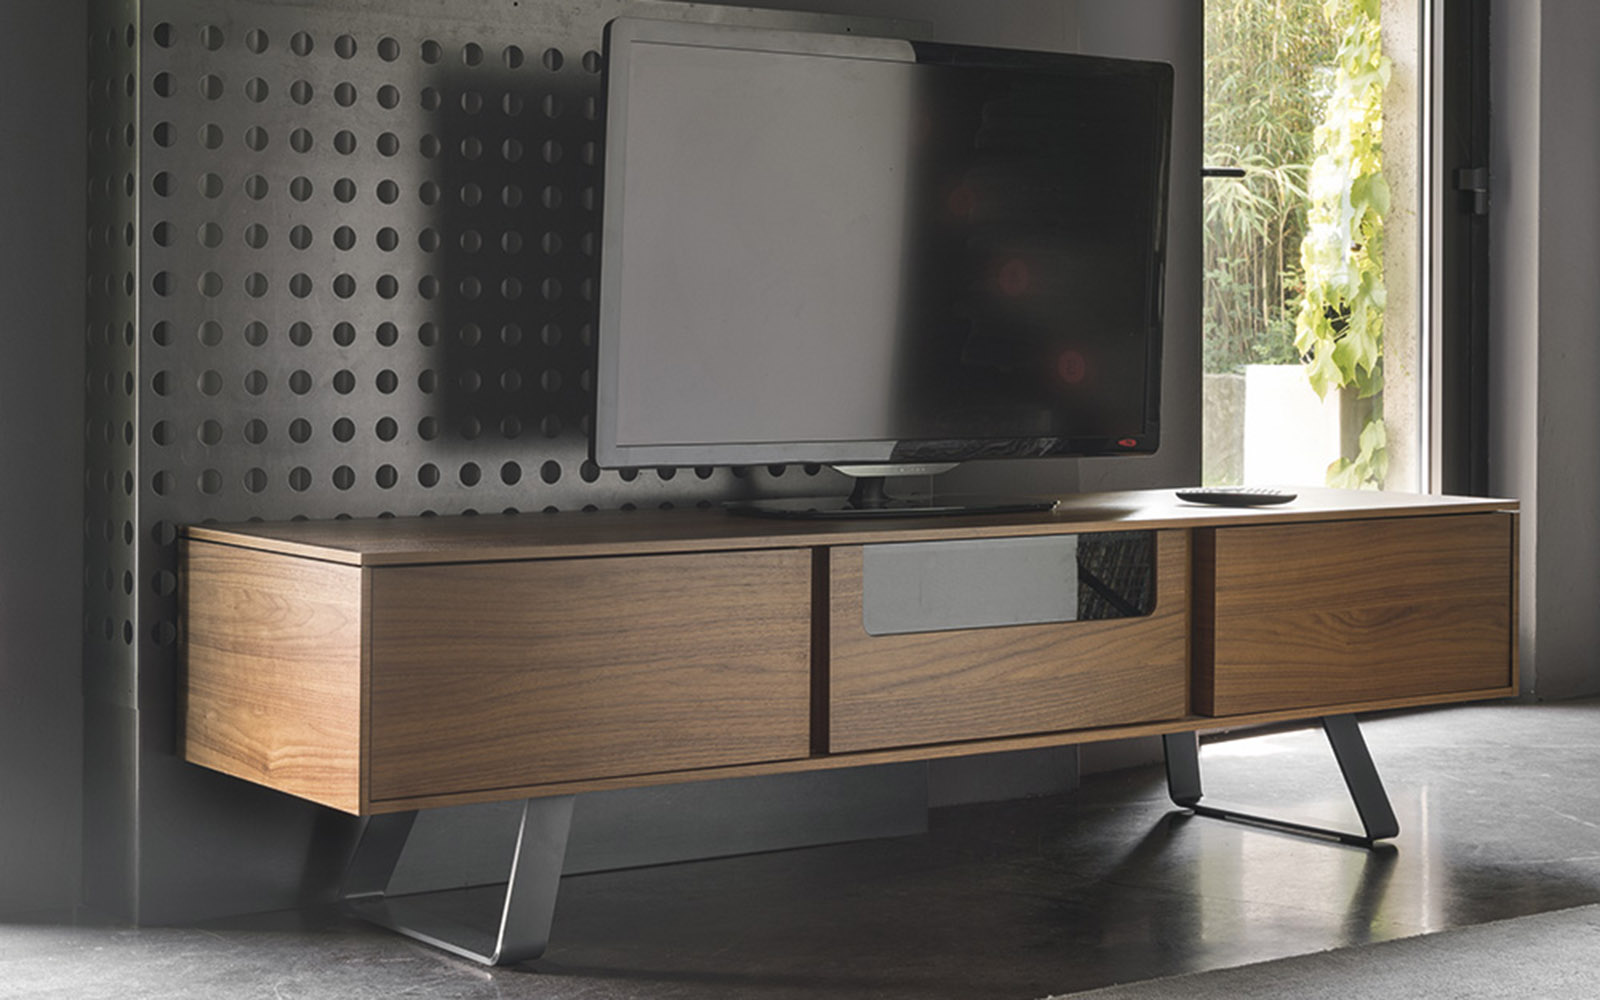 Porta tv deca mobili benevento - Mobili tv calligaris ...